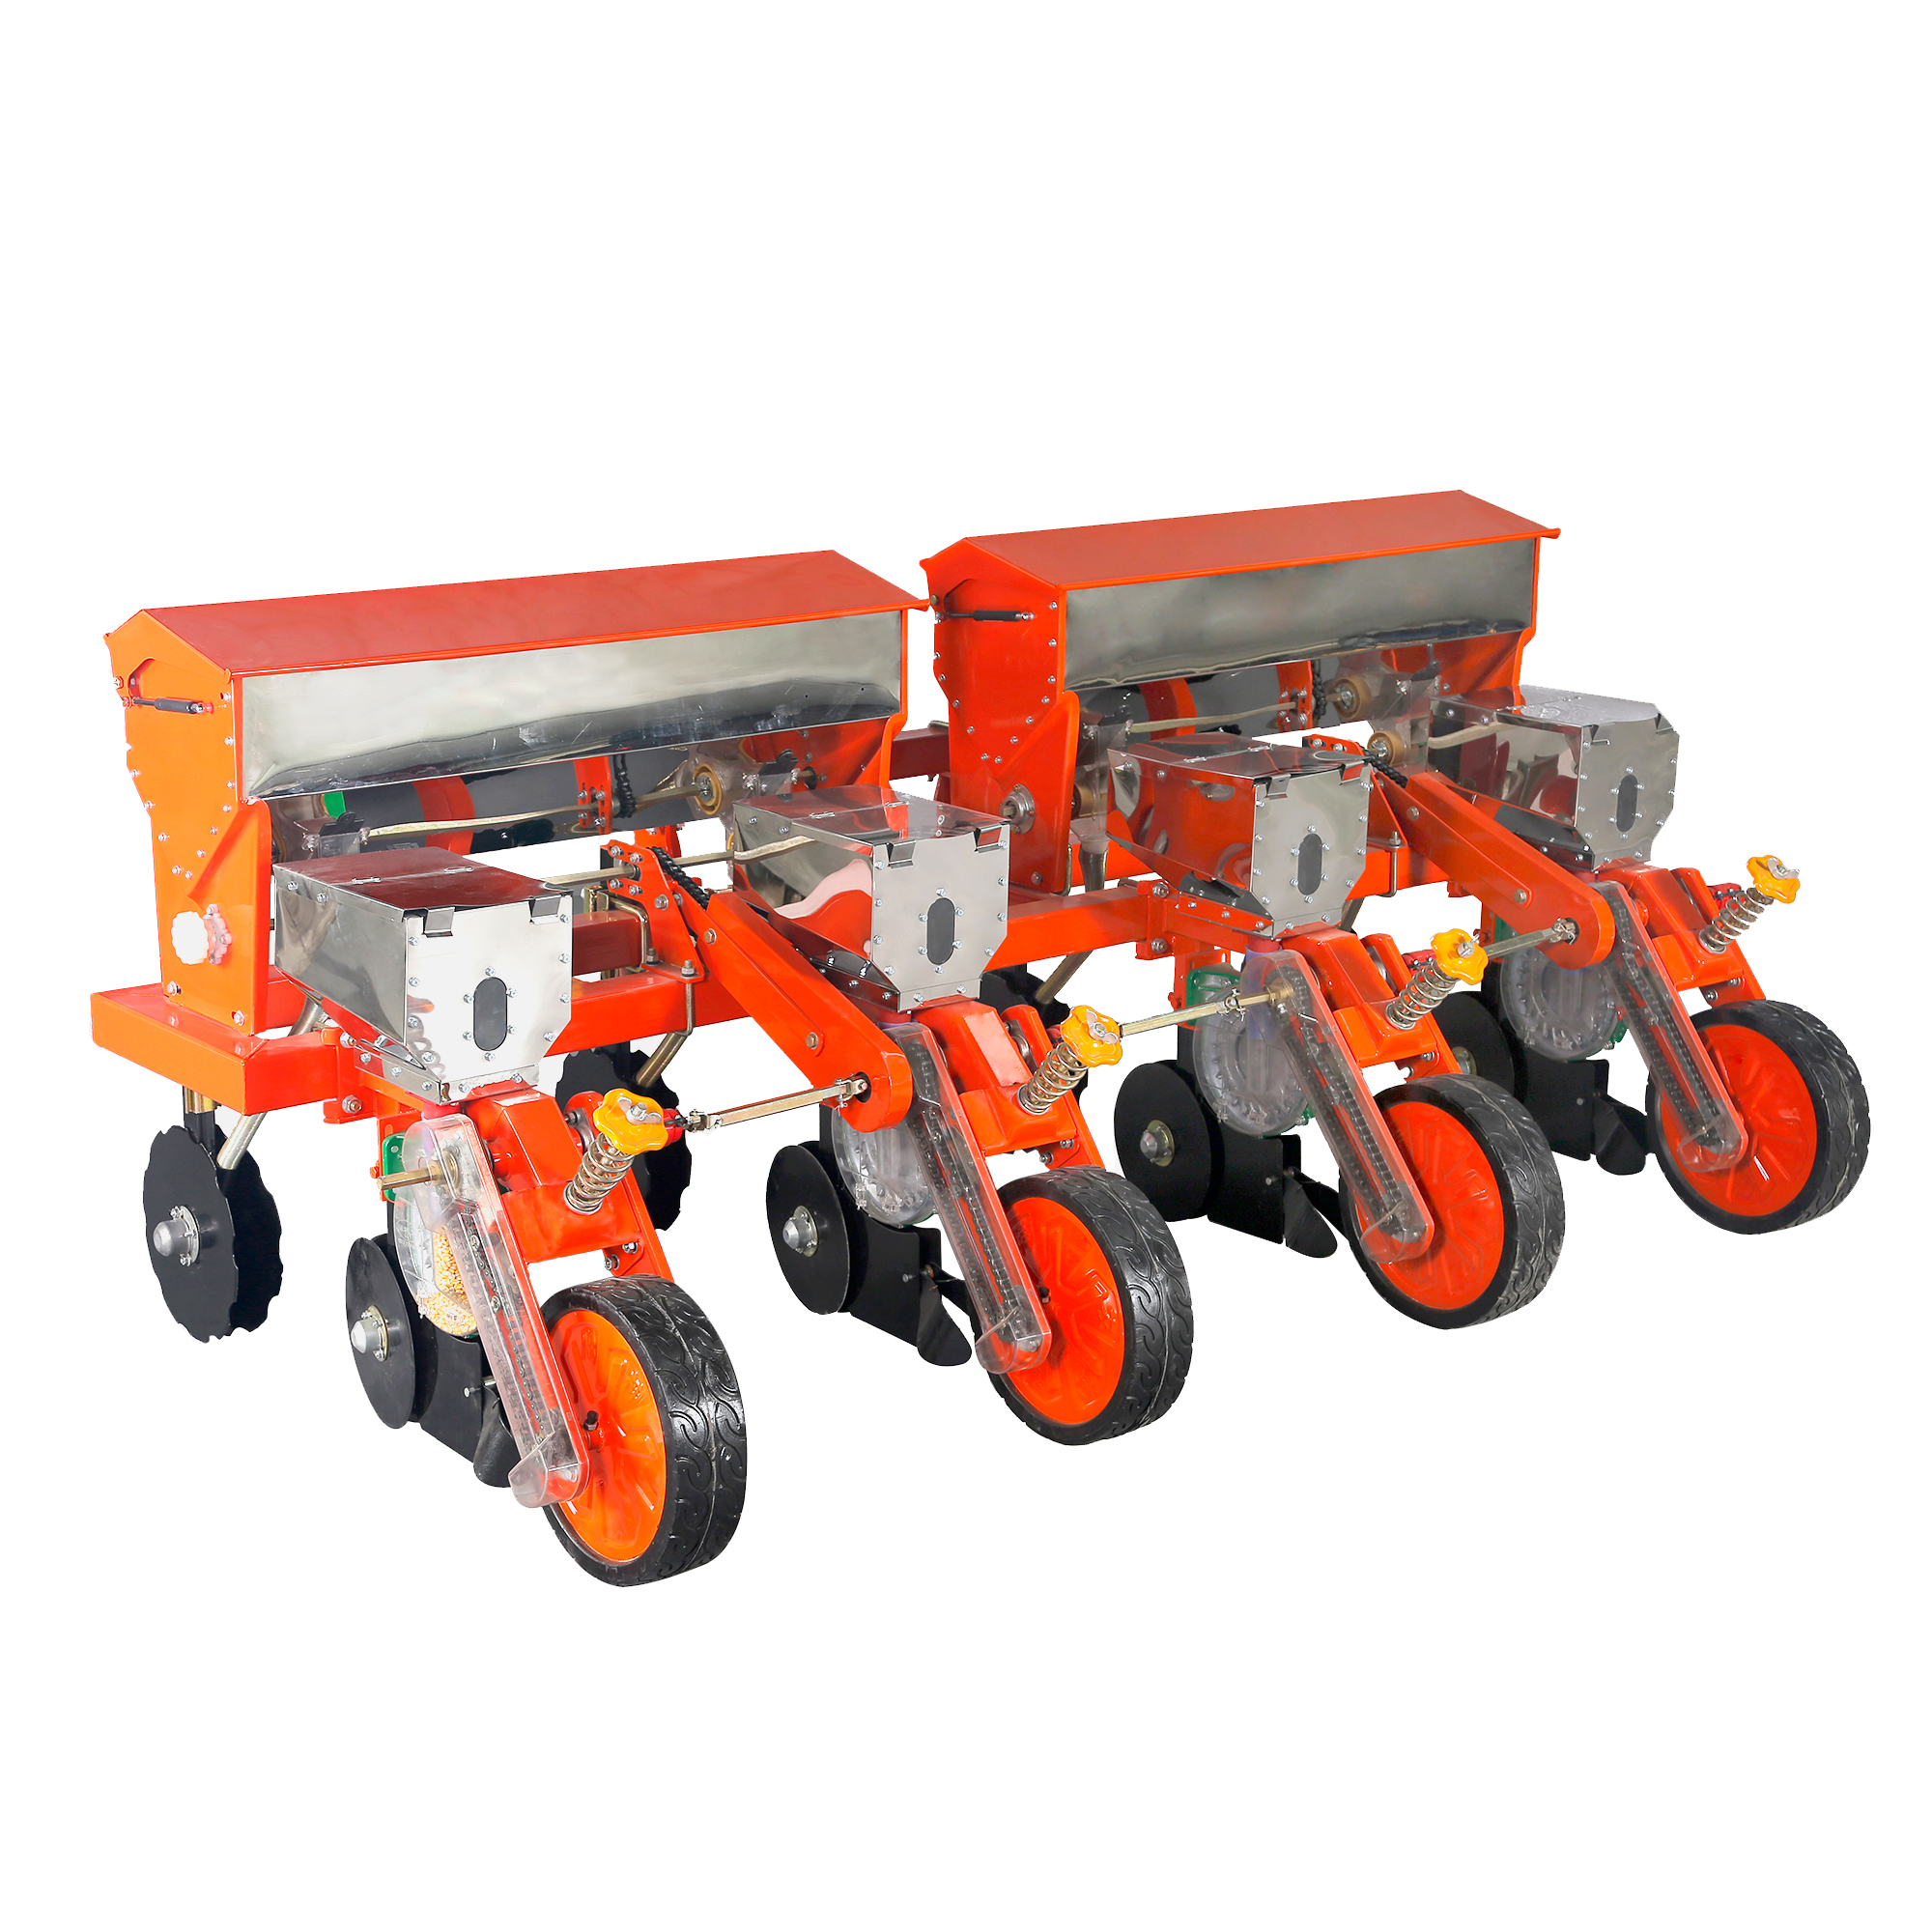 3 Point Hitch 4 Row Corn Seed Planter Corn Seeder Planter Machine For Tractor Price Buy Hand Corn Seeder Machine Sweet Corn Machine Corn Peeling Machine Product On Alibaba Com